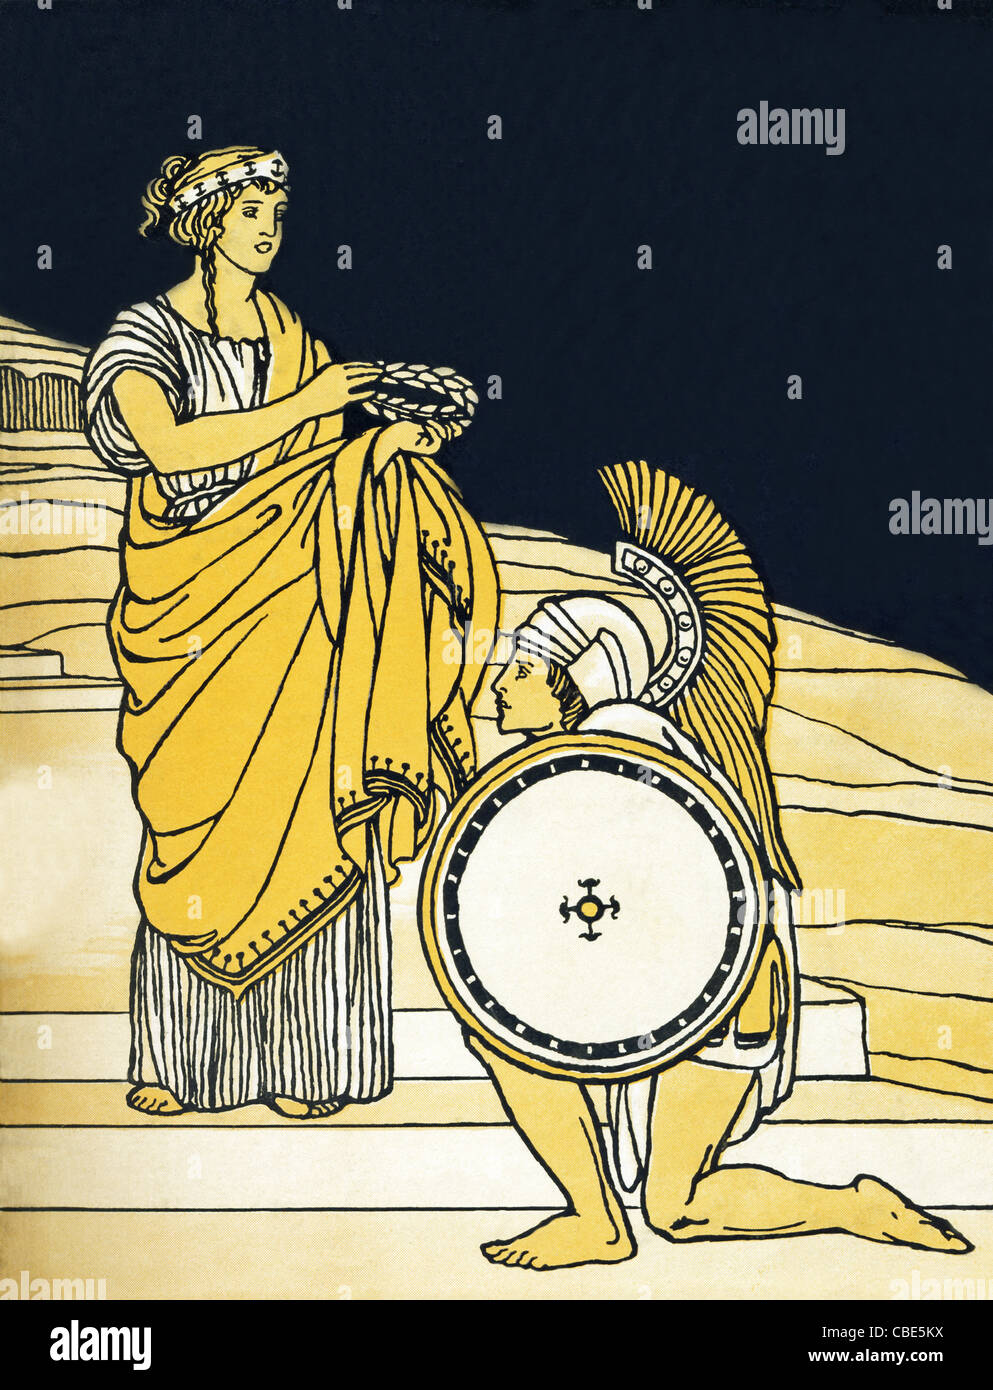 Athena, the Greek goddess of wisdom and warfare, is shown crowning a brave warrior with an olive wreath. - Stock Image